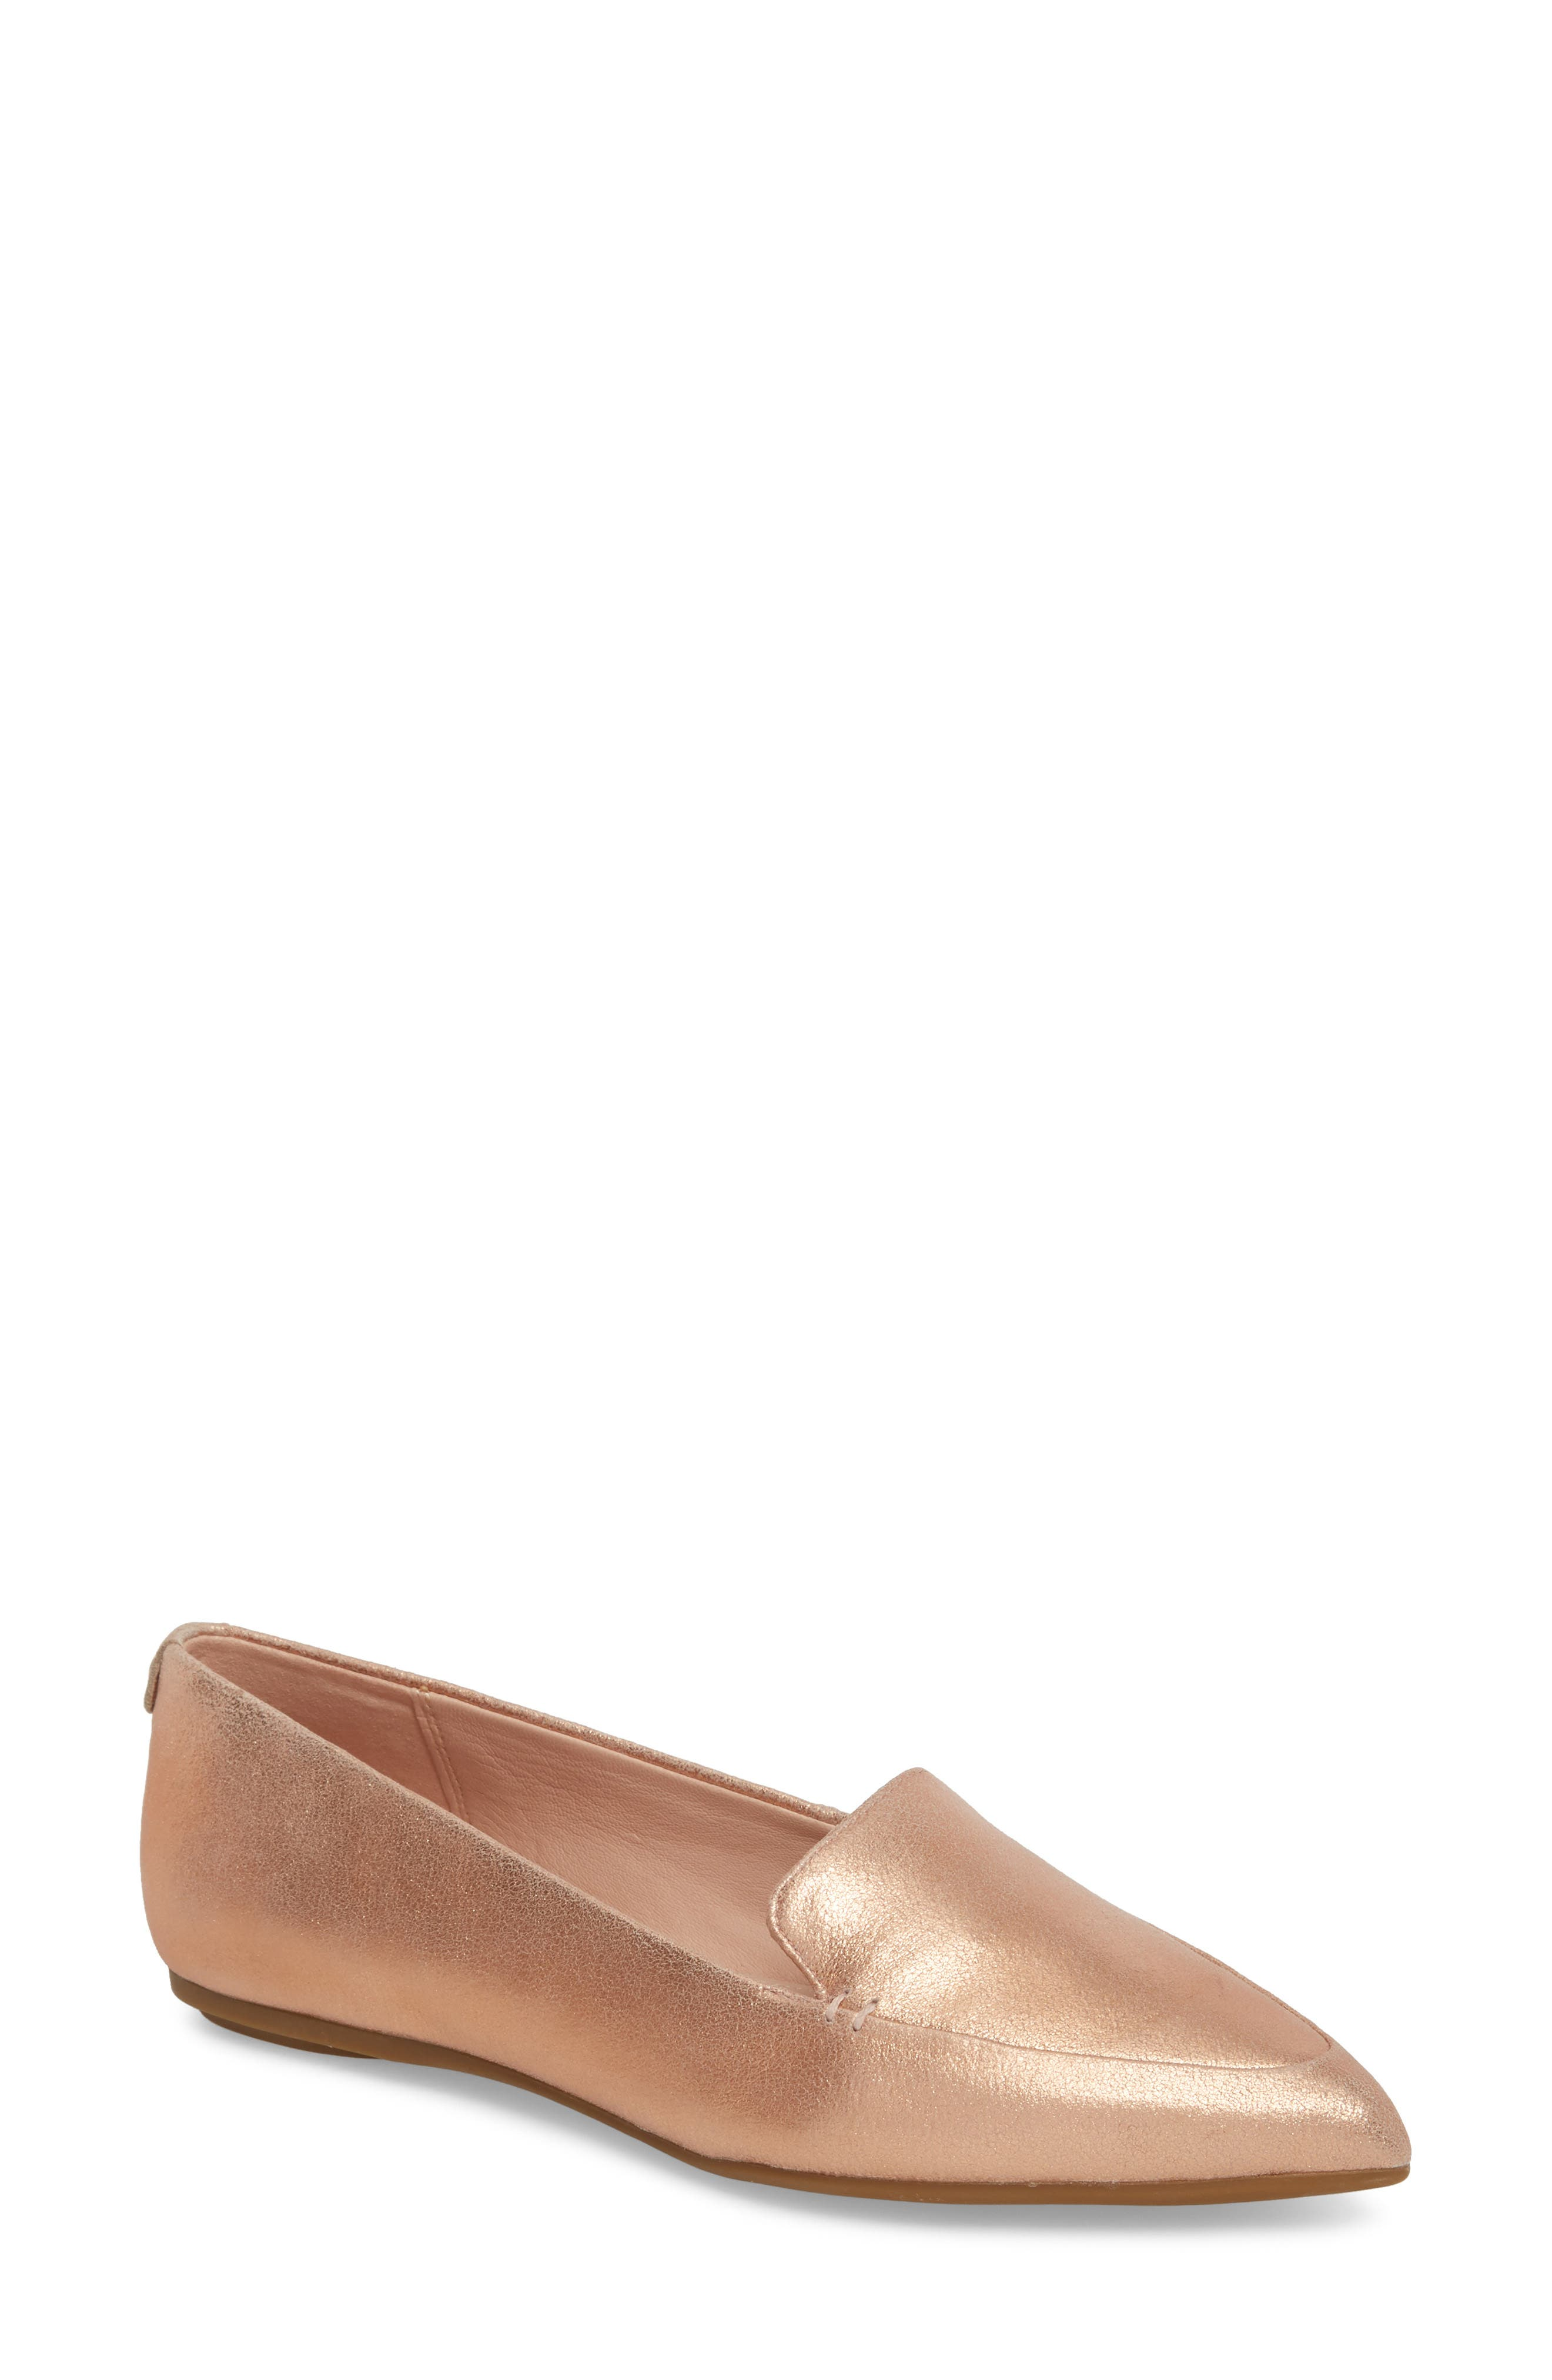 Faye Pointy Toe Loafer,                             Main thumbnail 1, color,                             Rose Gold Metallic Leather